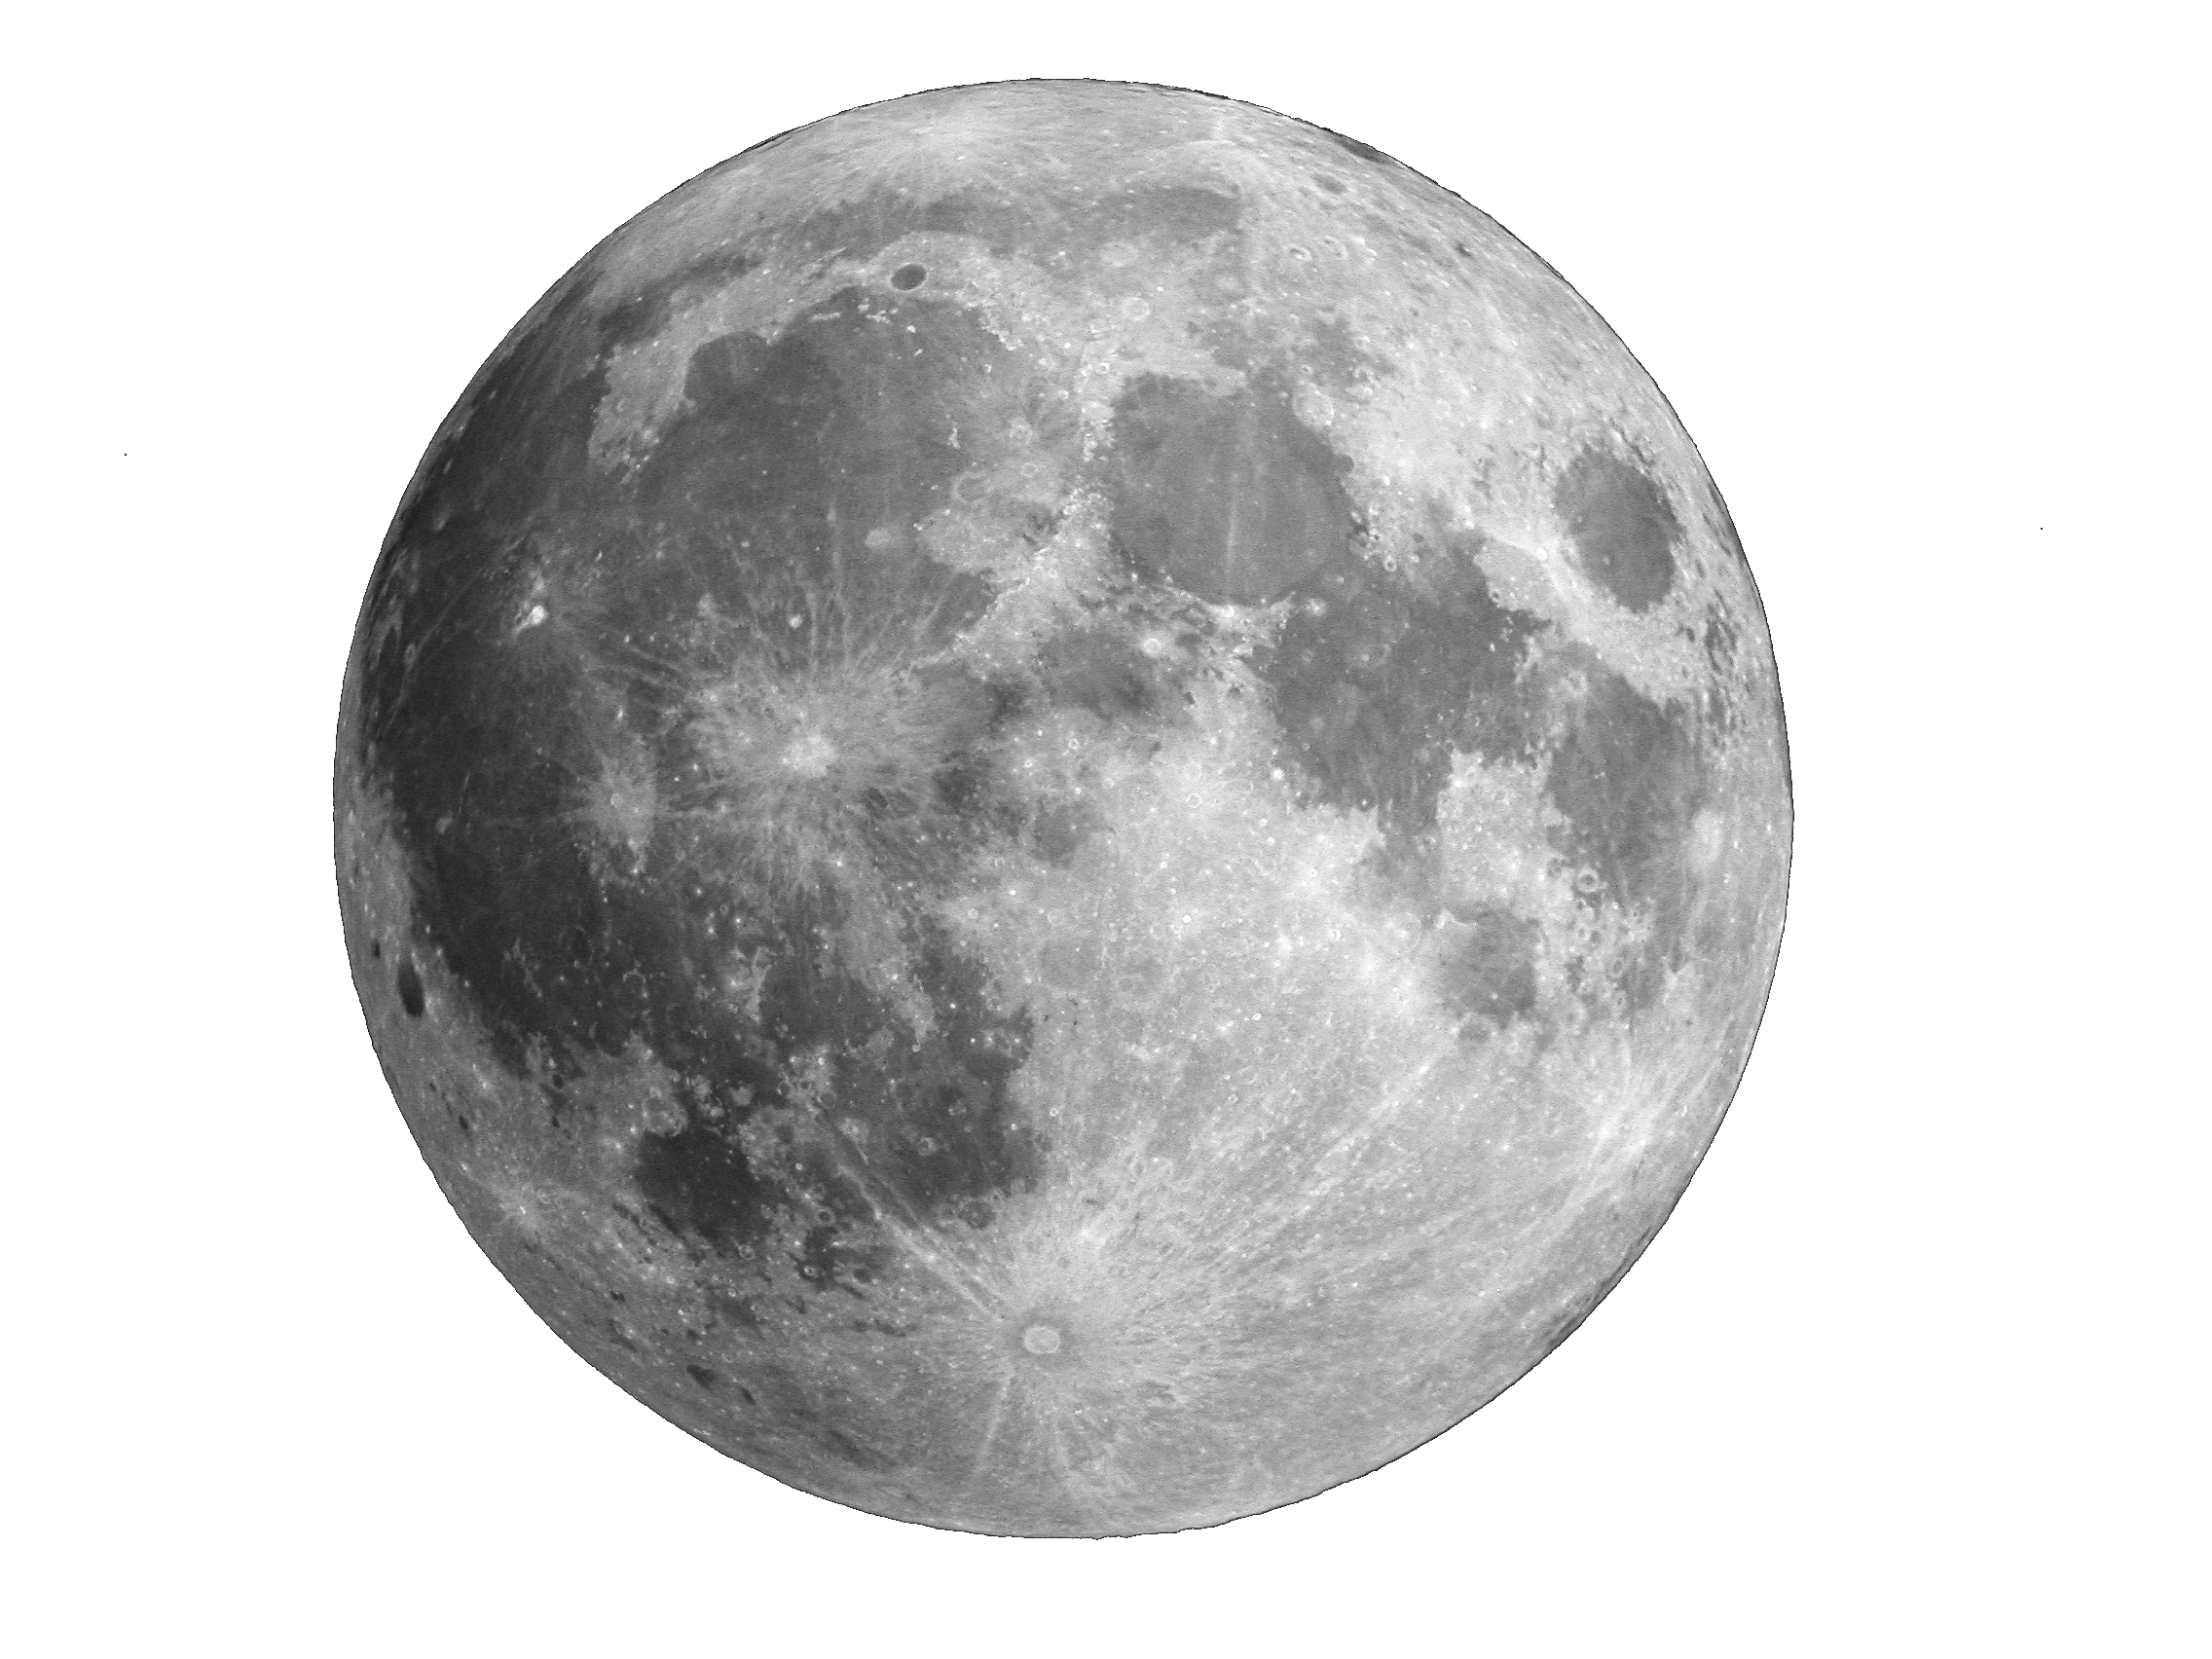 Full Moon Drawing Black And White Moon Png Images Free Download